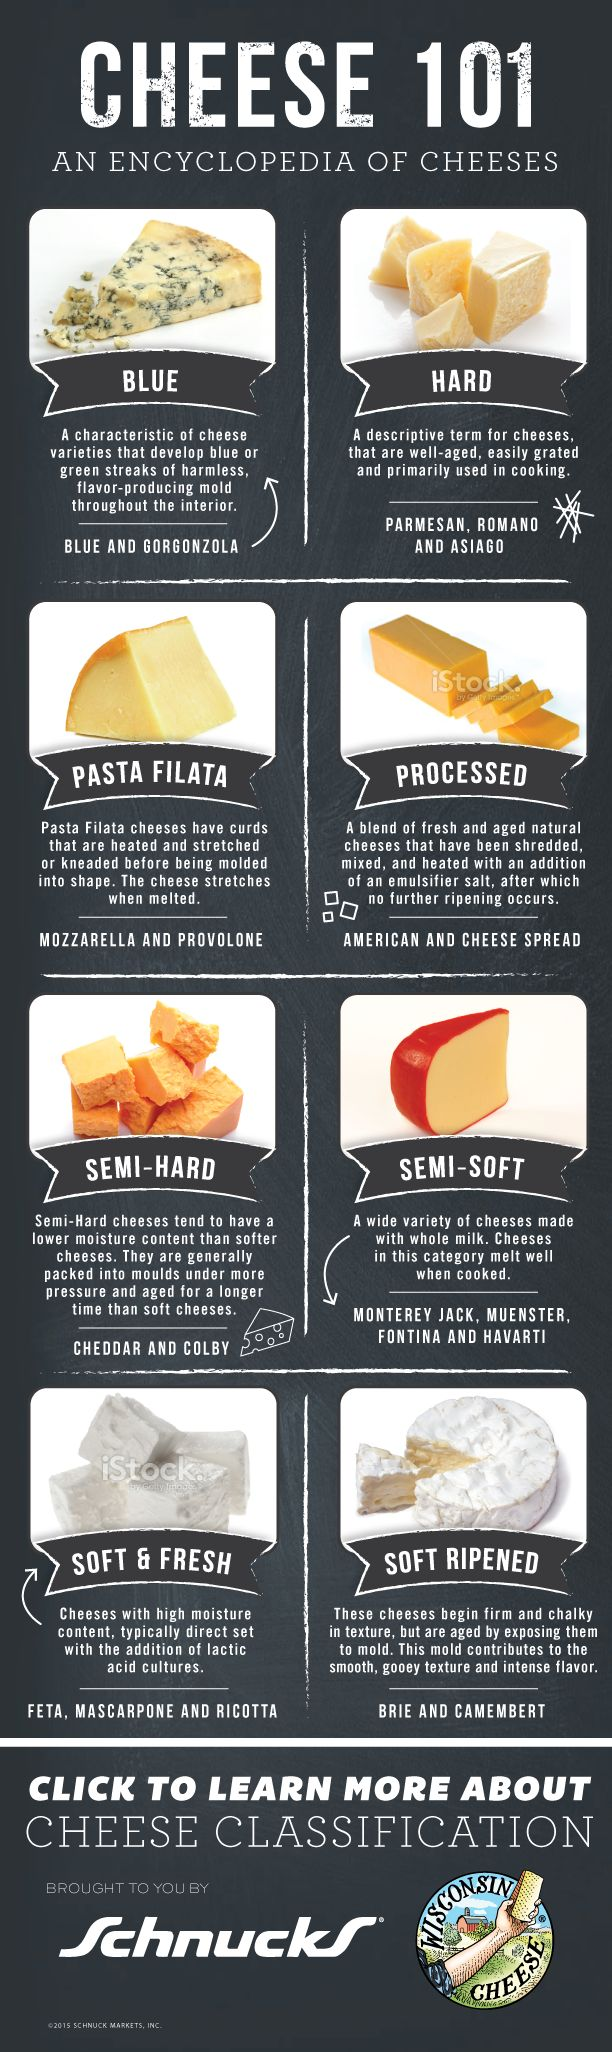 Cheese 101! Tips for cooking and serving all types of cheese.